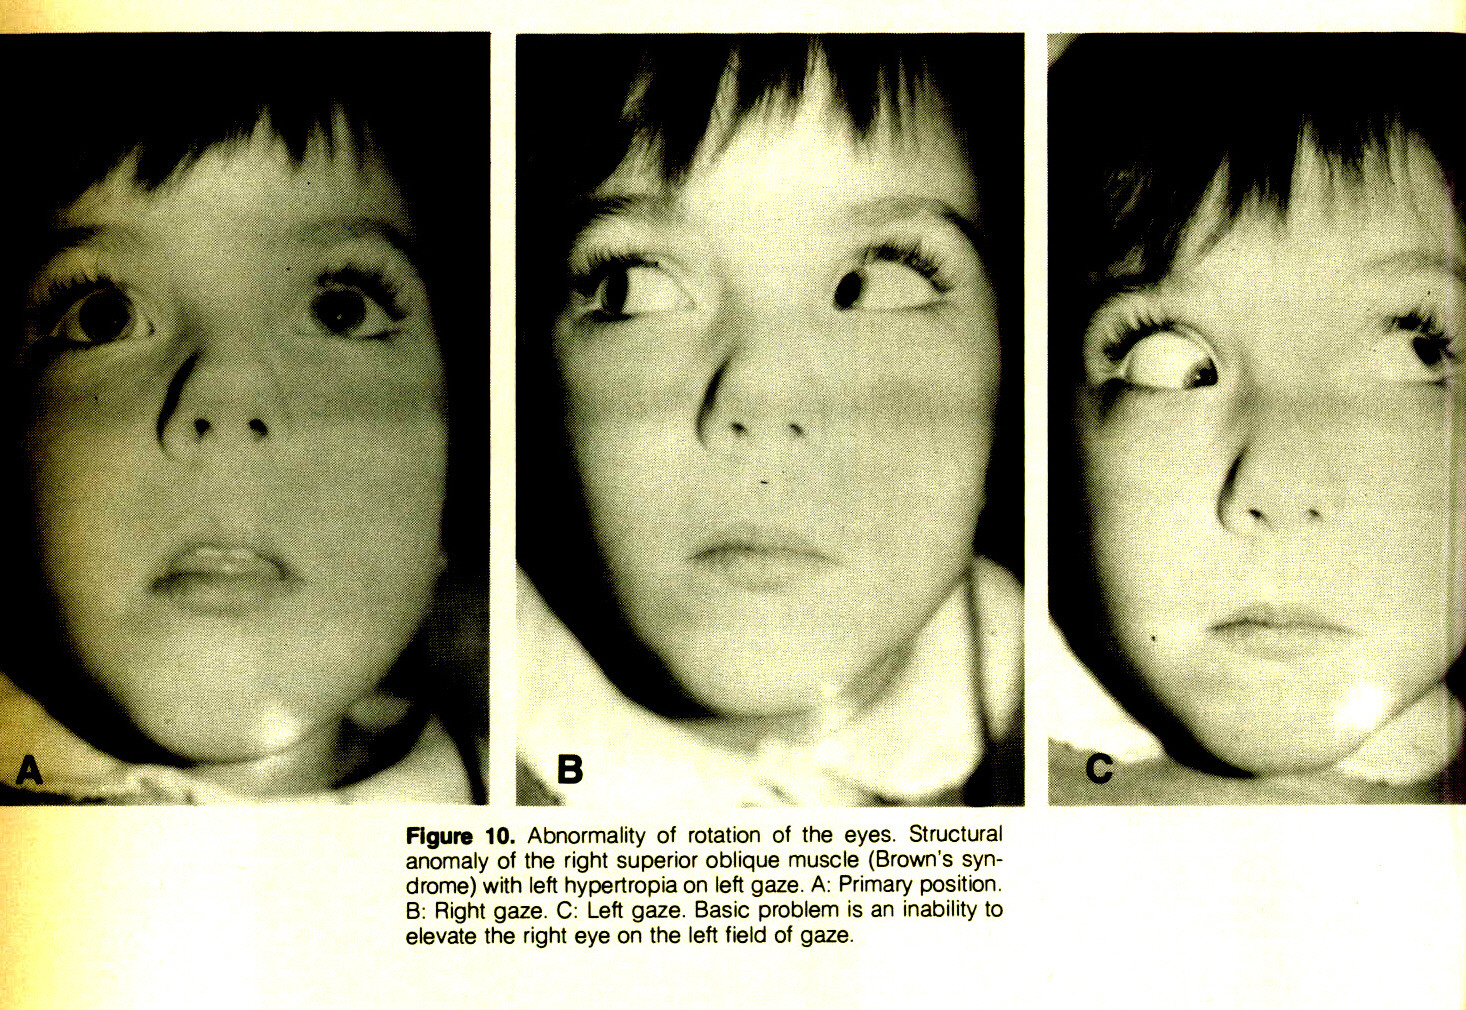 Figure 10. Abnormality of rotation of the eyes. Structural anomaly of the right superior oblique muscle (Brown's syndrome) with left hypertropia on left gaze. A: Primary position. B: Right gaze. C: Left gaze. Basic problem is an inability to elevate the right eye on the left field of gaze.